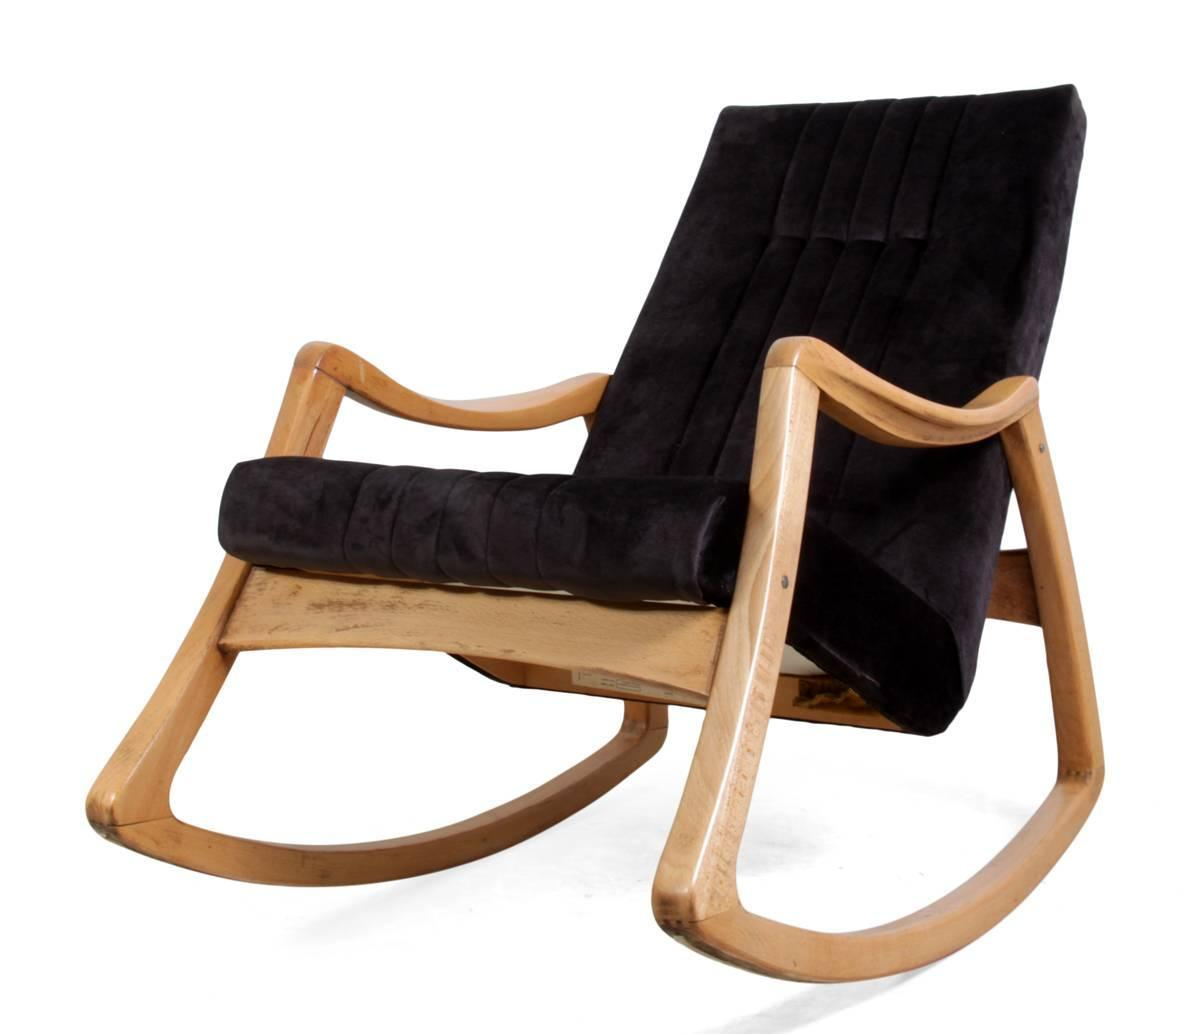 Midcentury Rocking Chair For Sale at 1stdibs